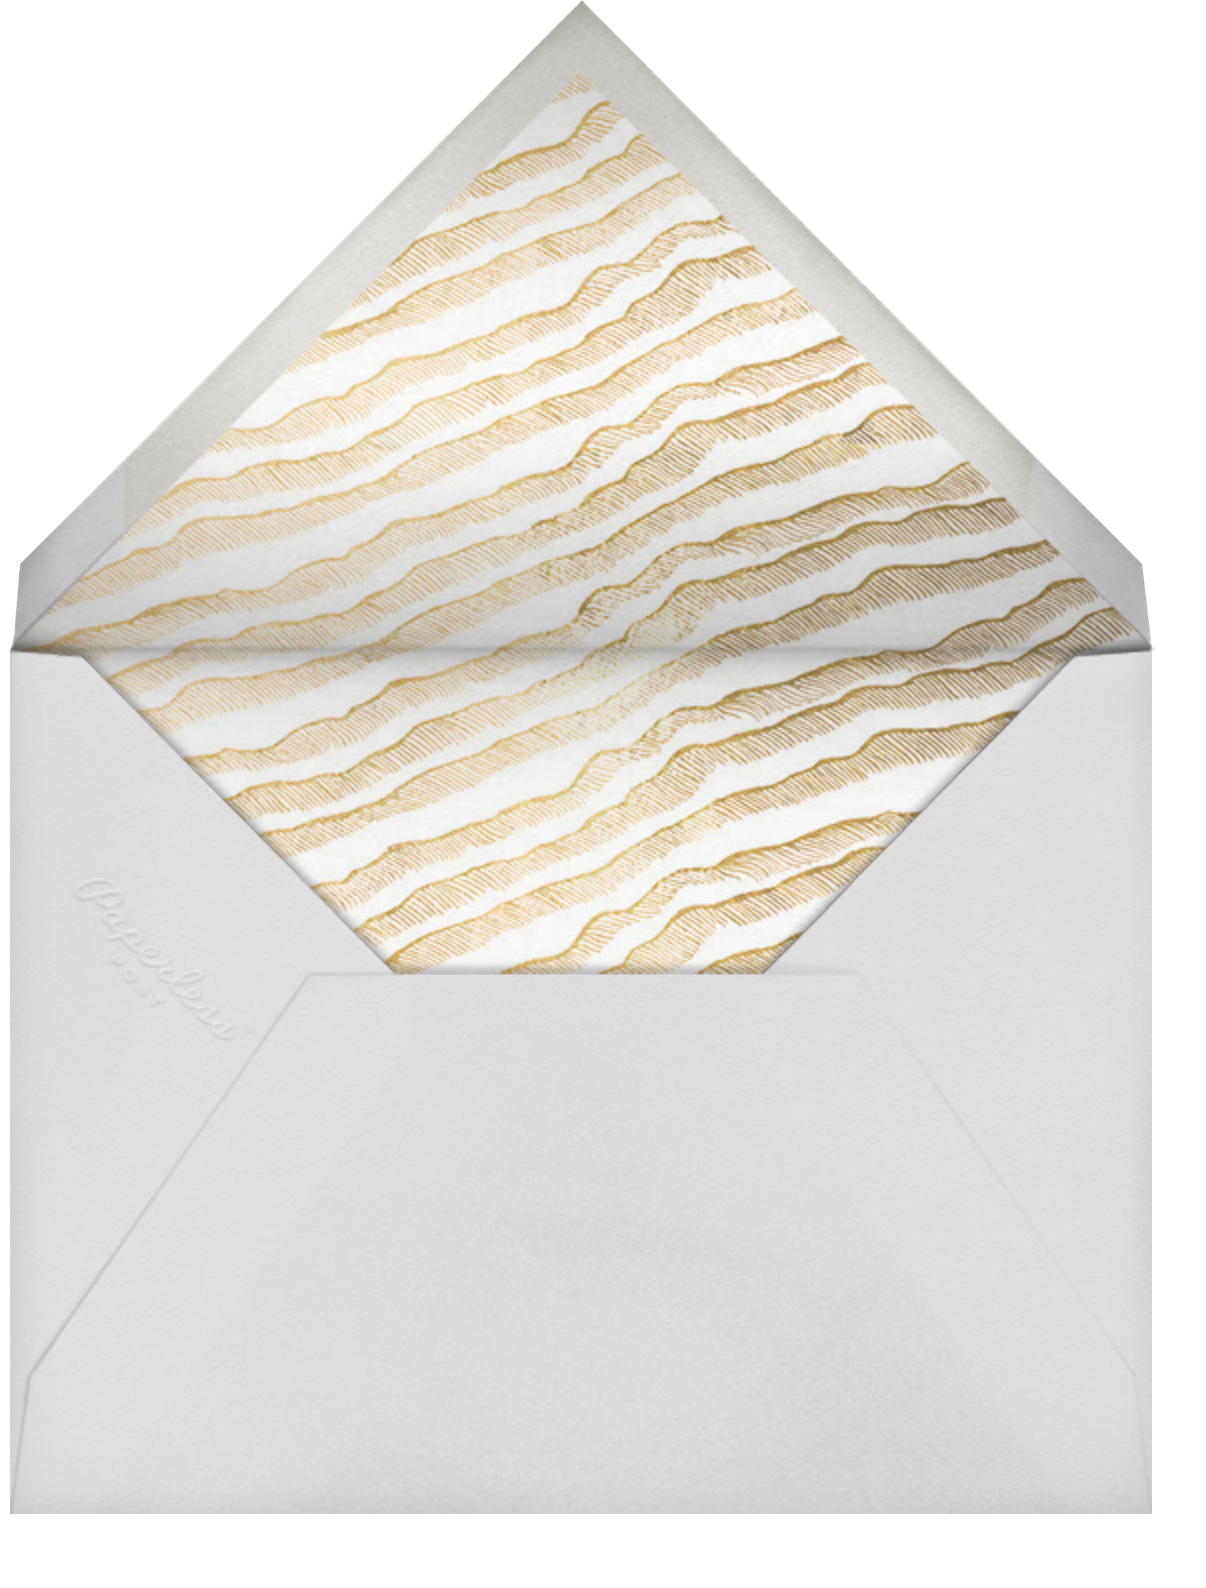 Frosted Photo - White/Gold - Kelly Wearstler - Holiday cards - envelope back